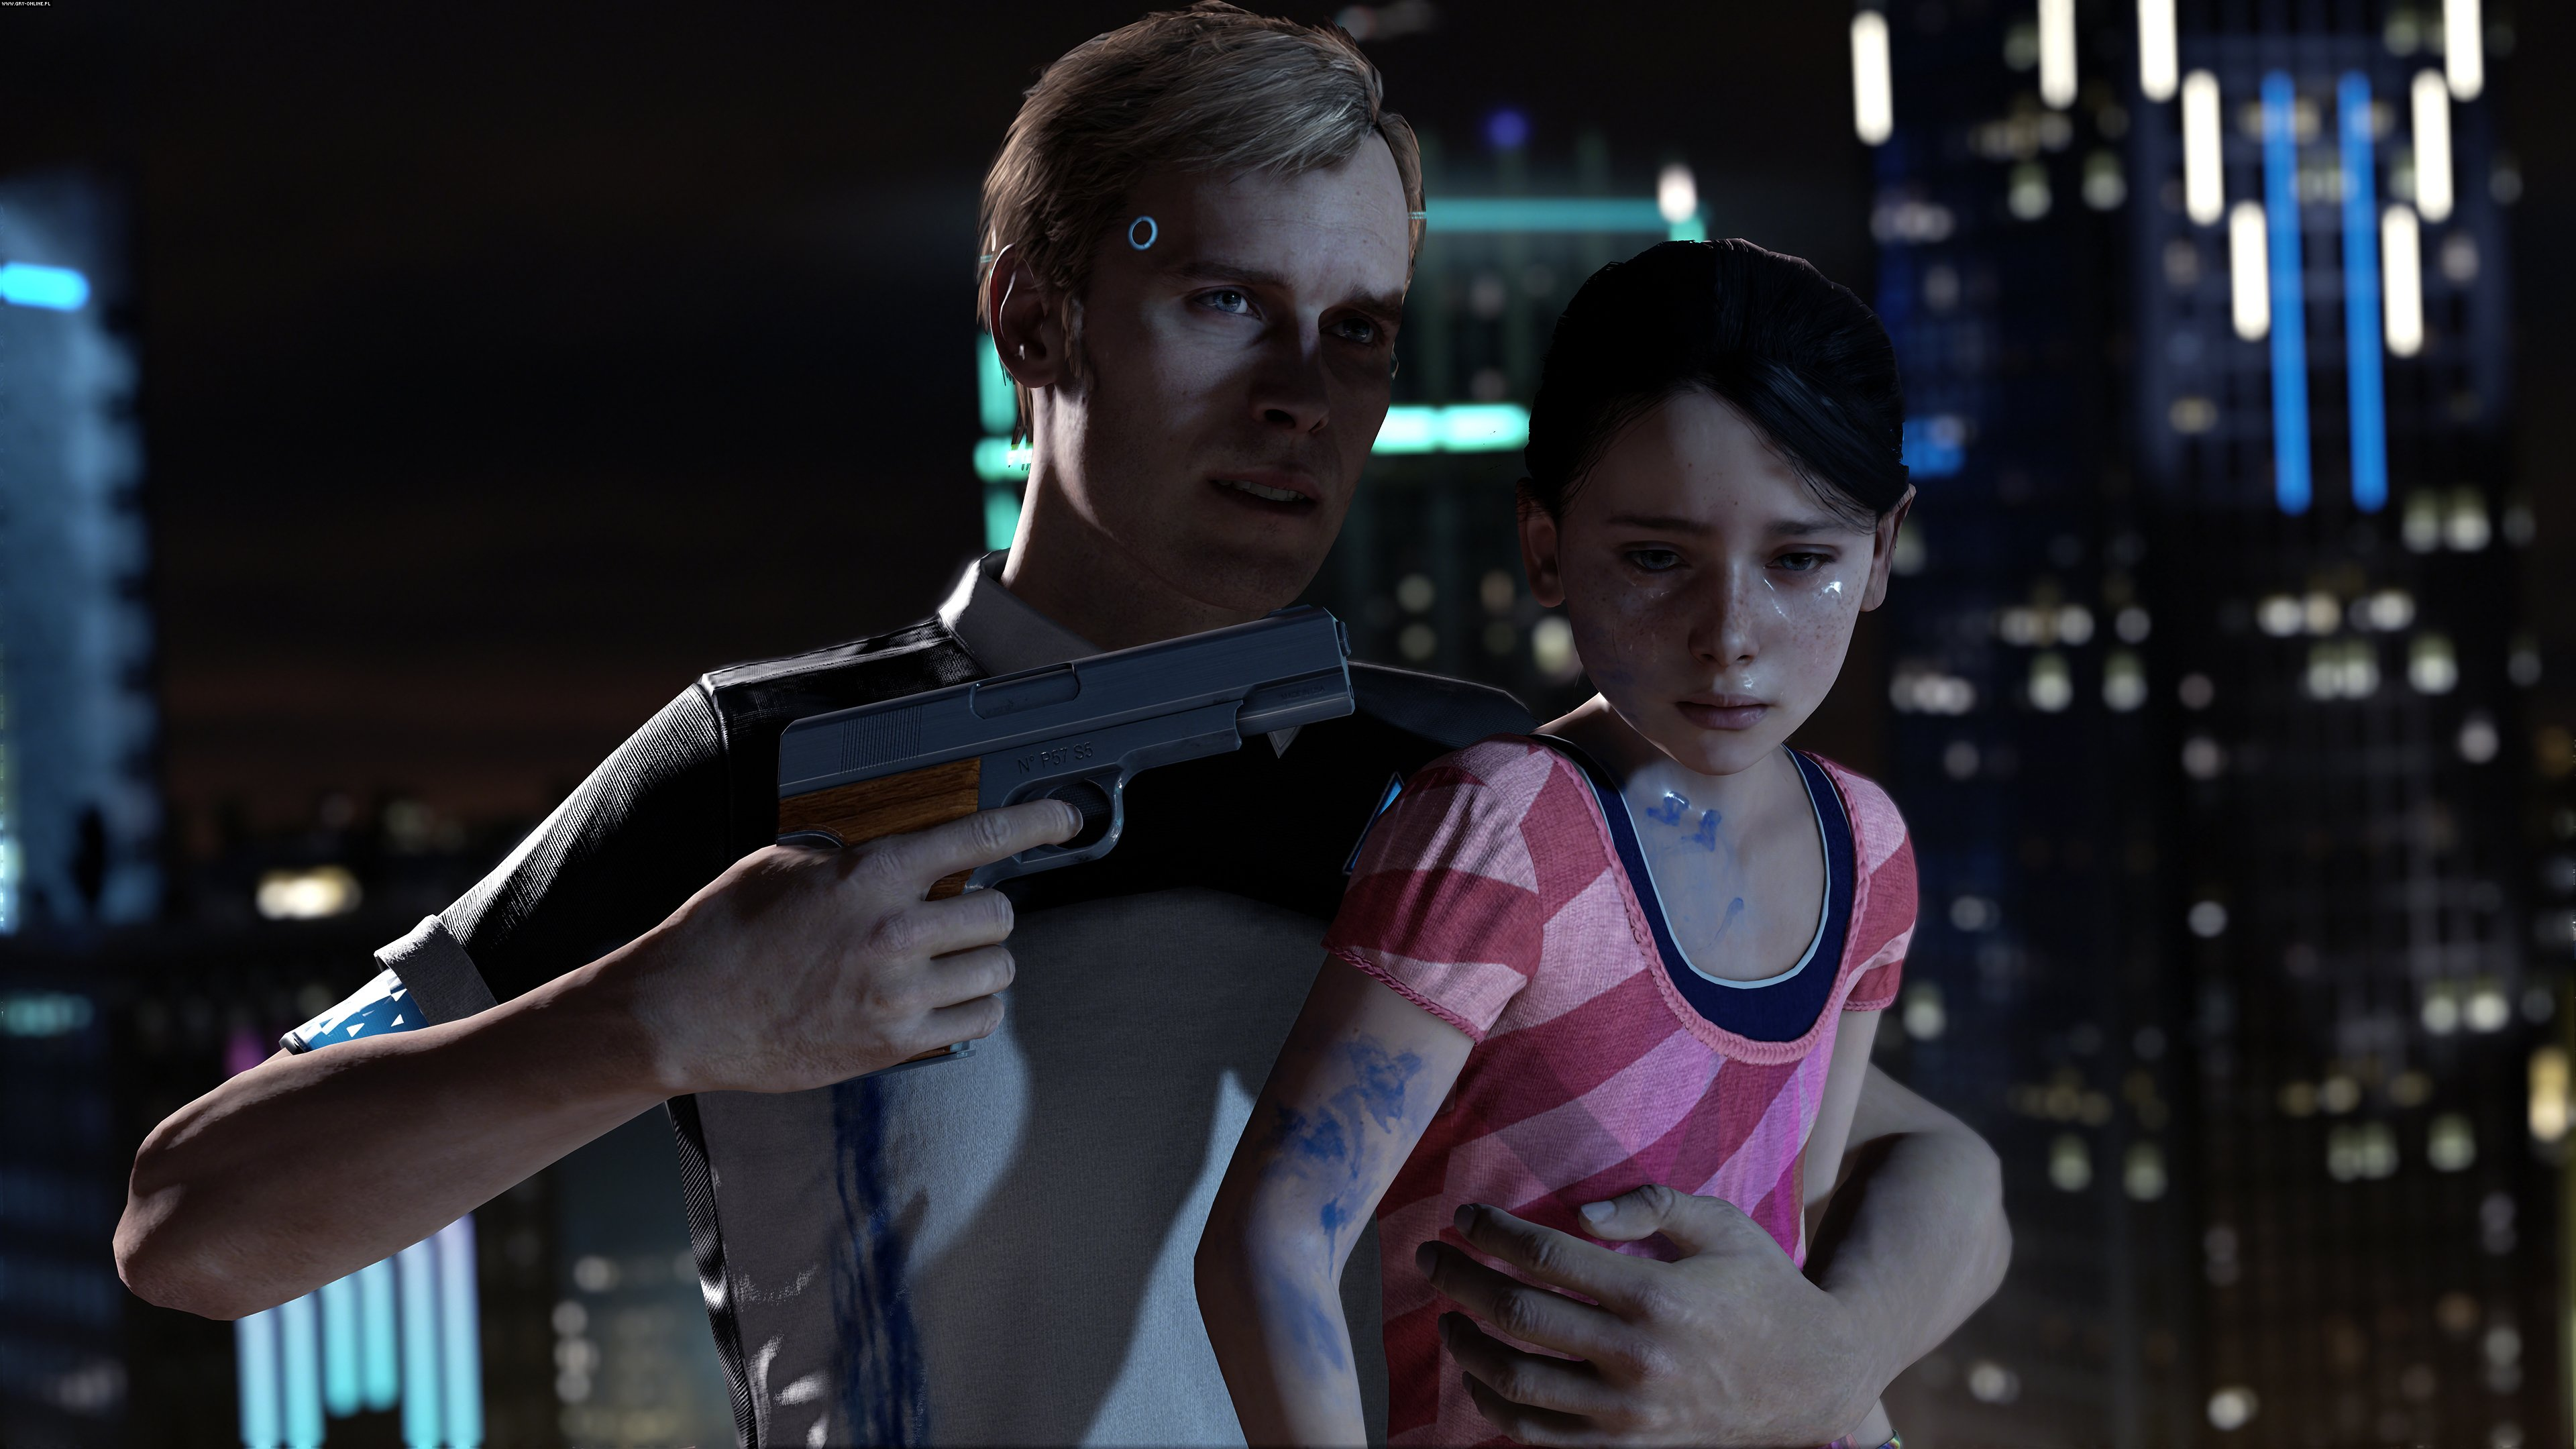 Detroit: Become Human PS4 Games Image 44/67, Quantic Dream, Sony Interactive Entertainment